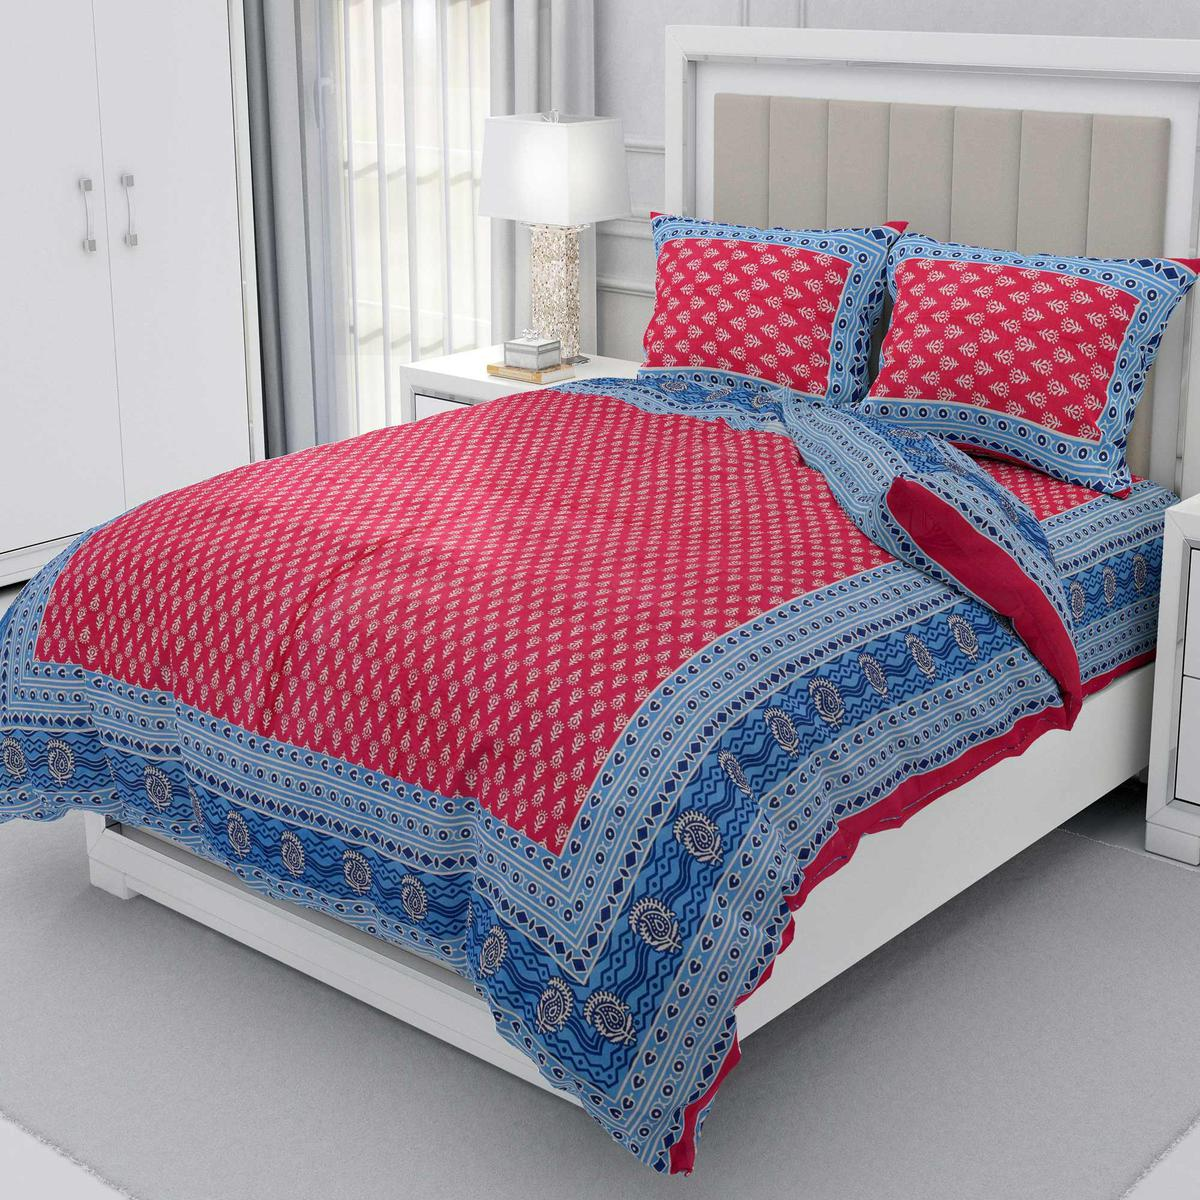 Zyla - Pink Colored Leaf Printed Double Queen Cotton Bedsheet